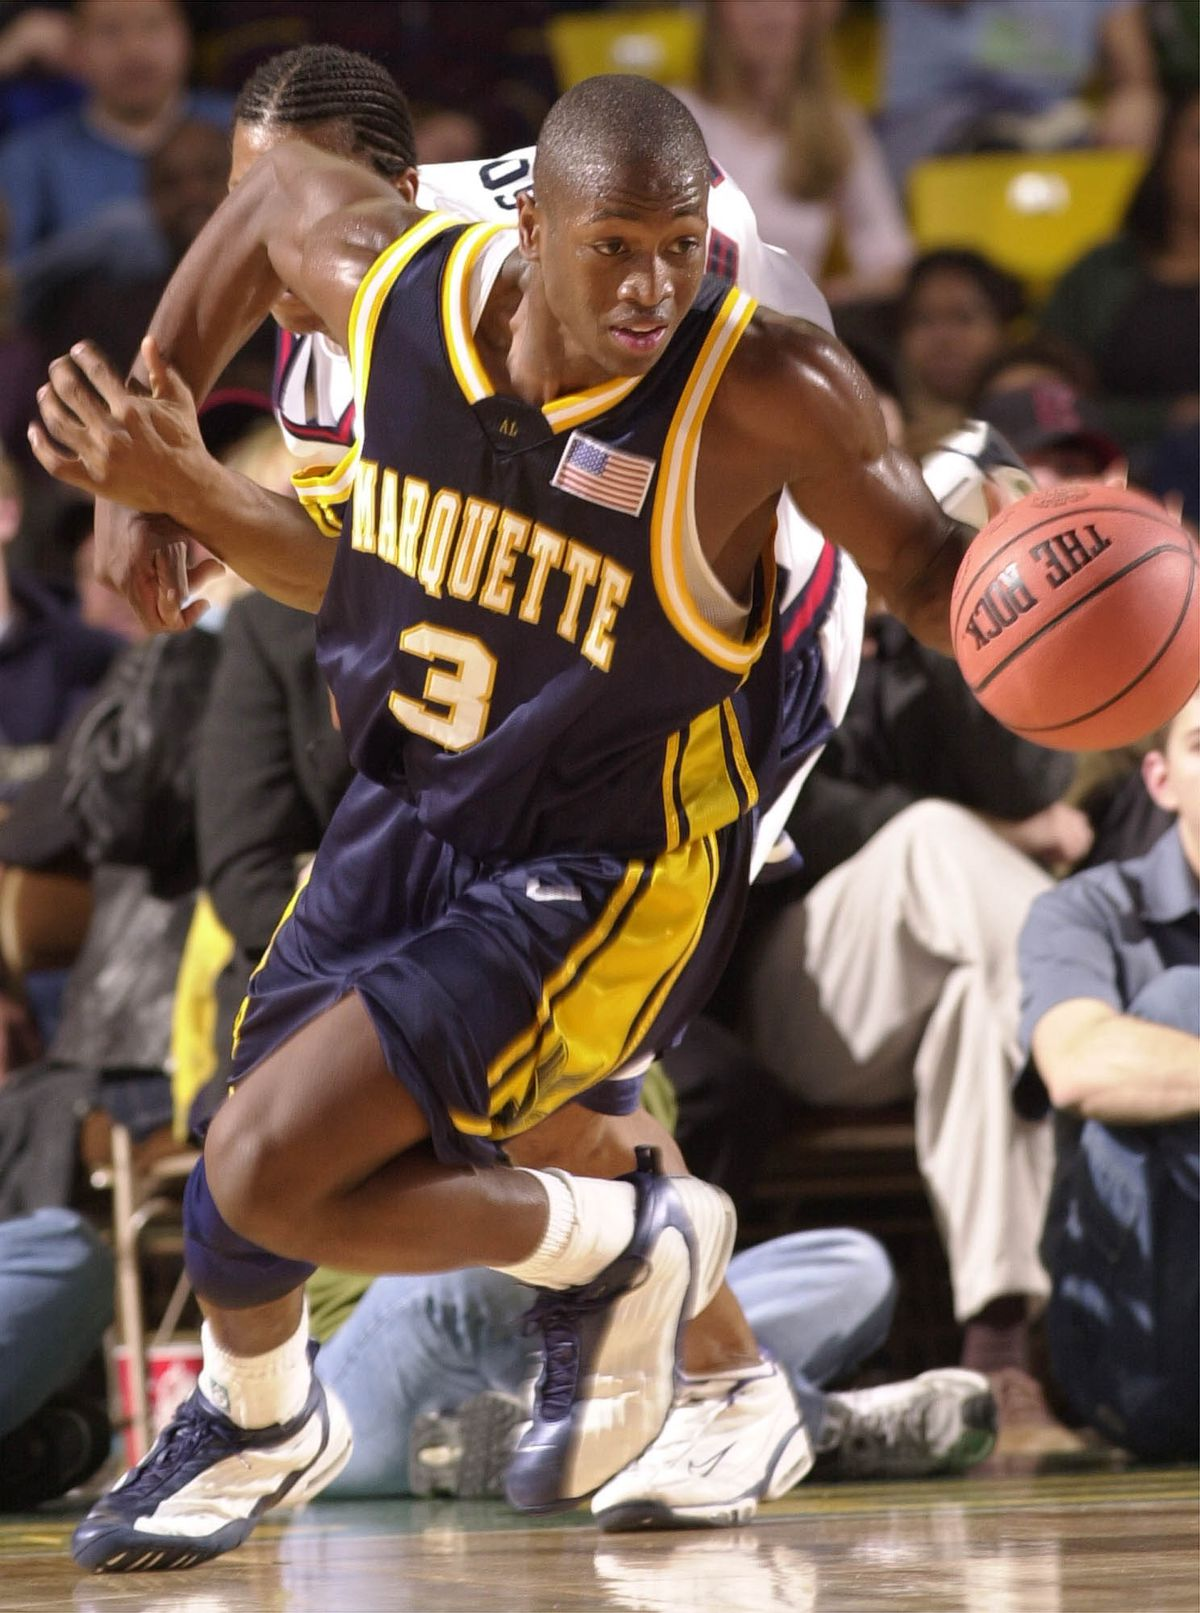 Dwyane Wade controls the ball for Marquette at the 2001 Great Alaska Shootout. (Marc Lester / ADN Archive 2001)